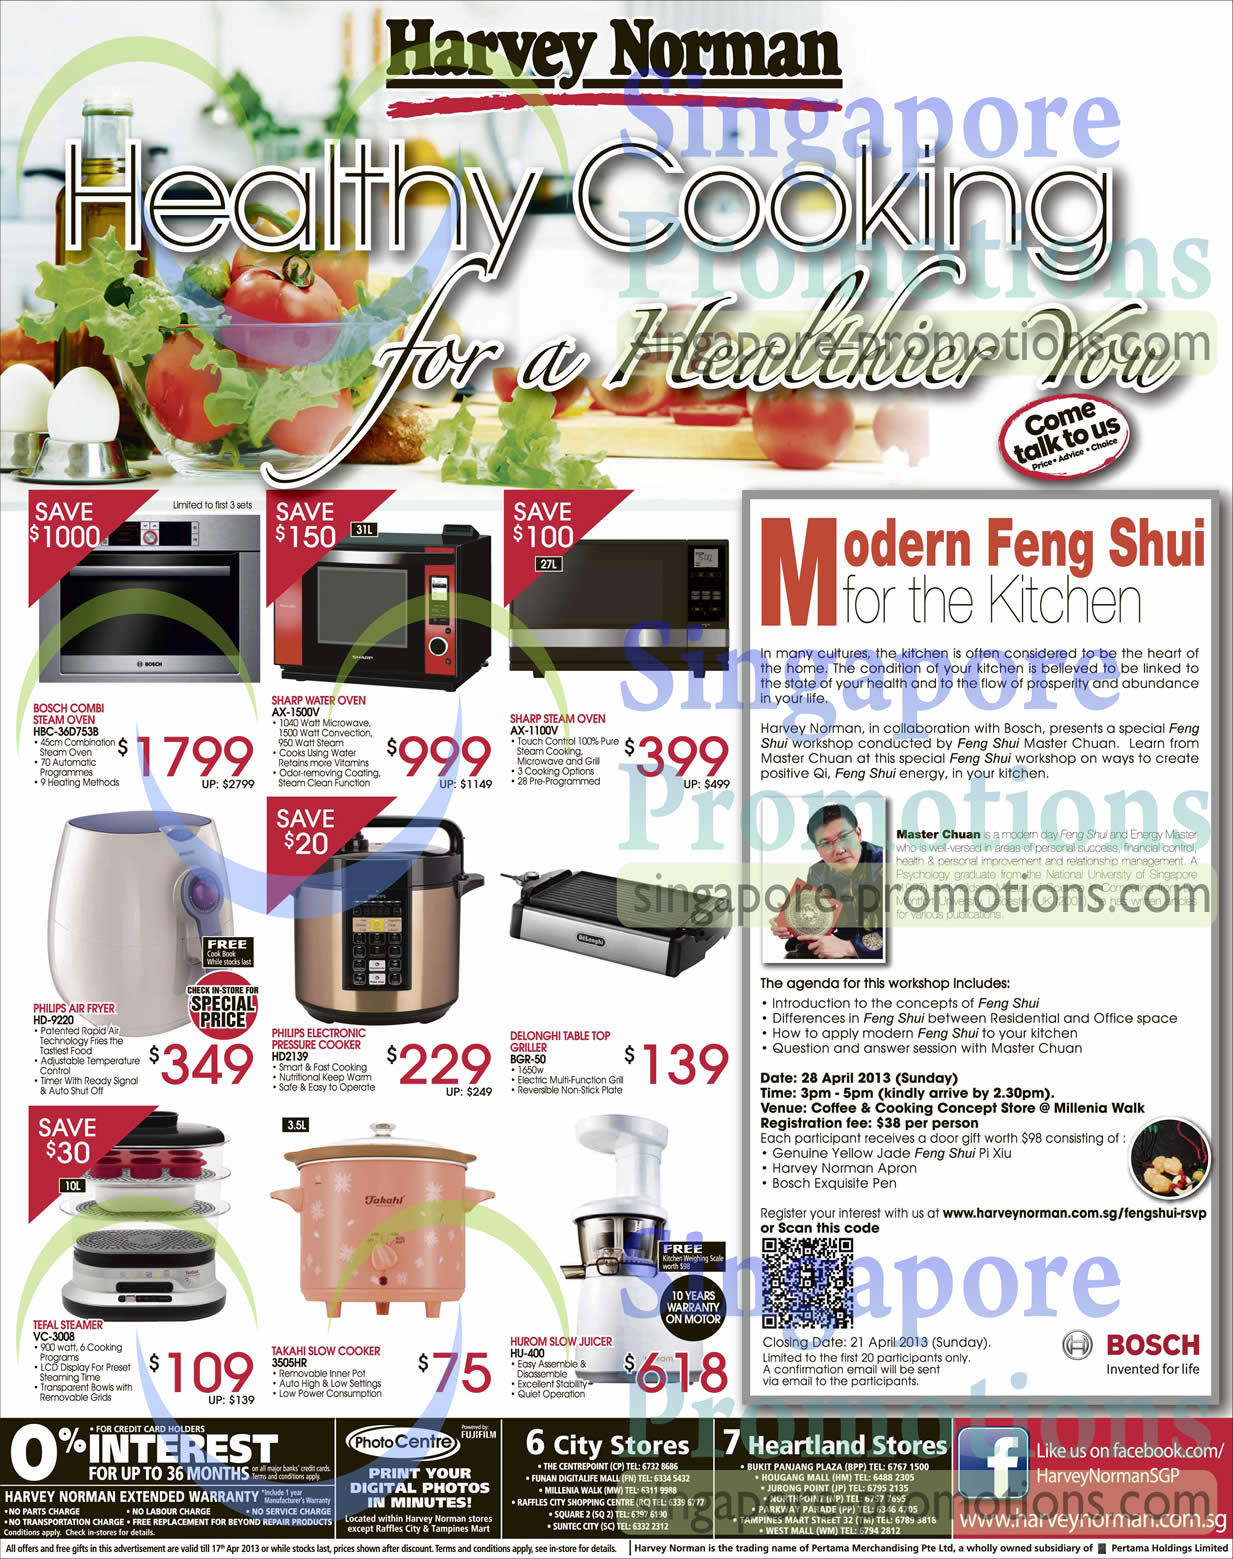 Ovens Sharp, Bosch, Philips, Delonghi, Tefal, Takahi, Hurom Harvey Norman Mattresses & Kitchen ...